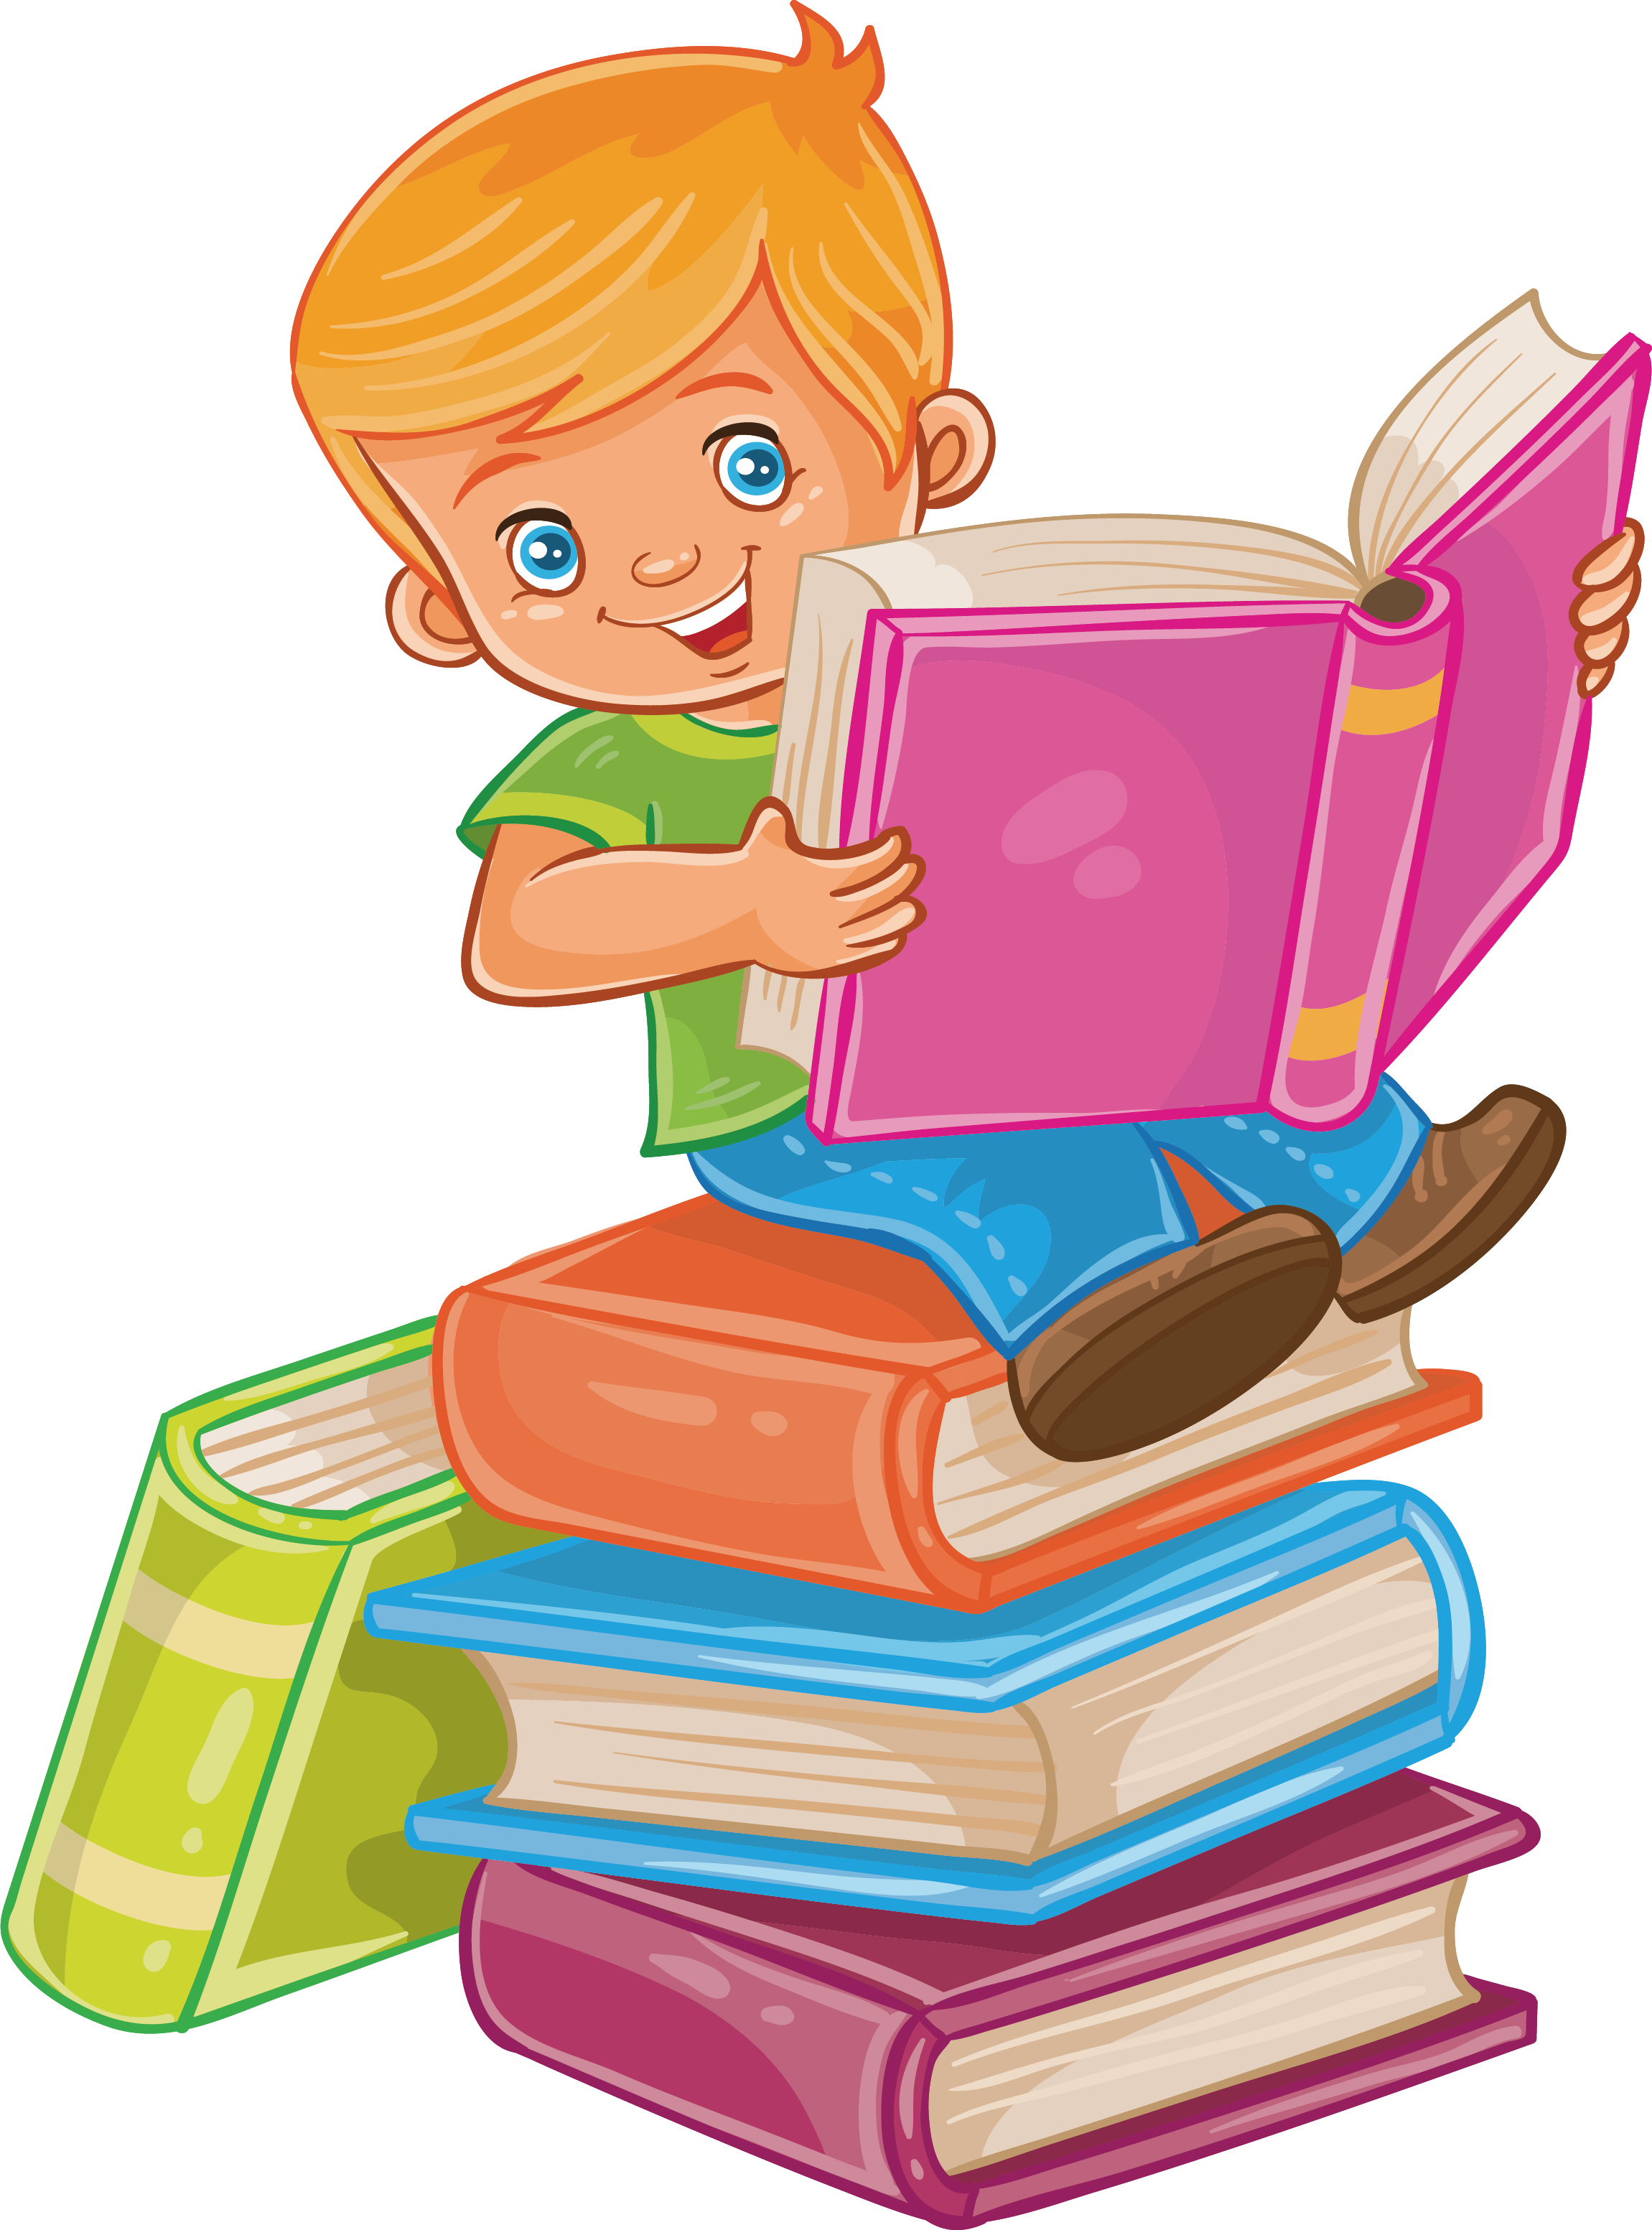 apple-sitting-on-books-clipart-14.png - 617.30 KB